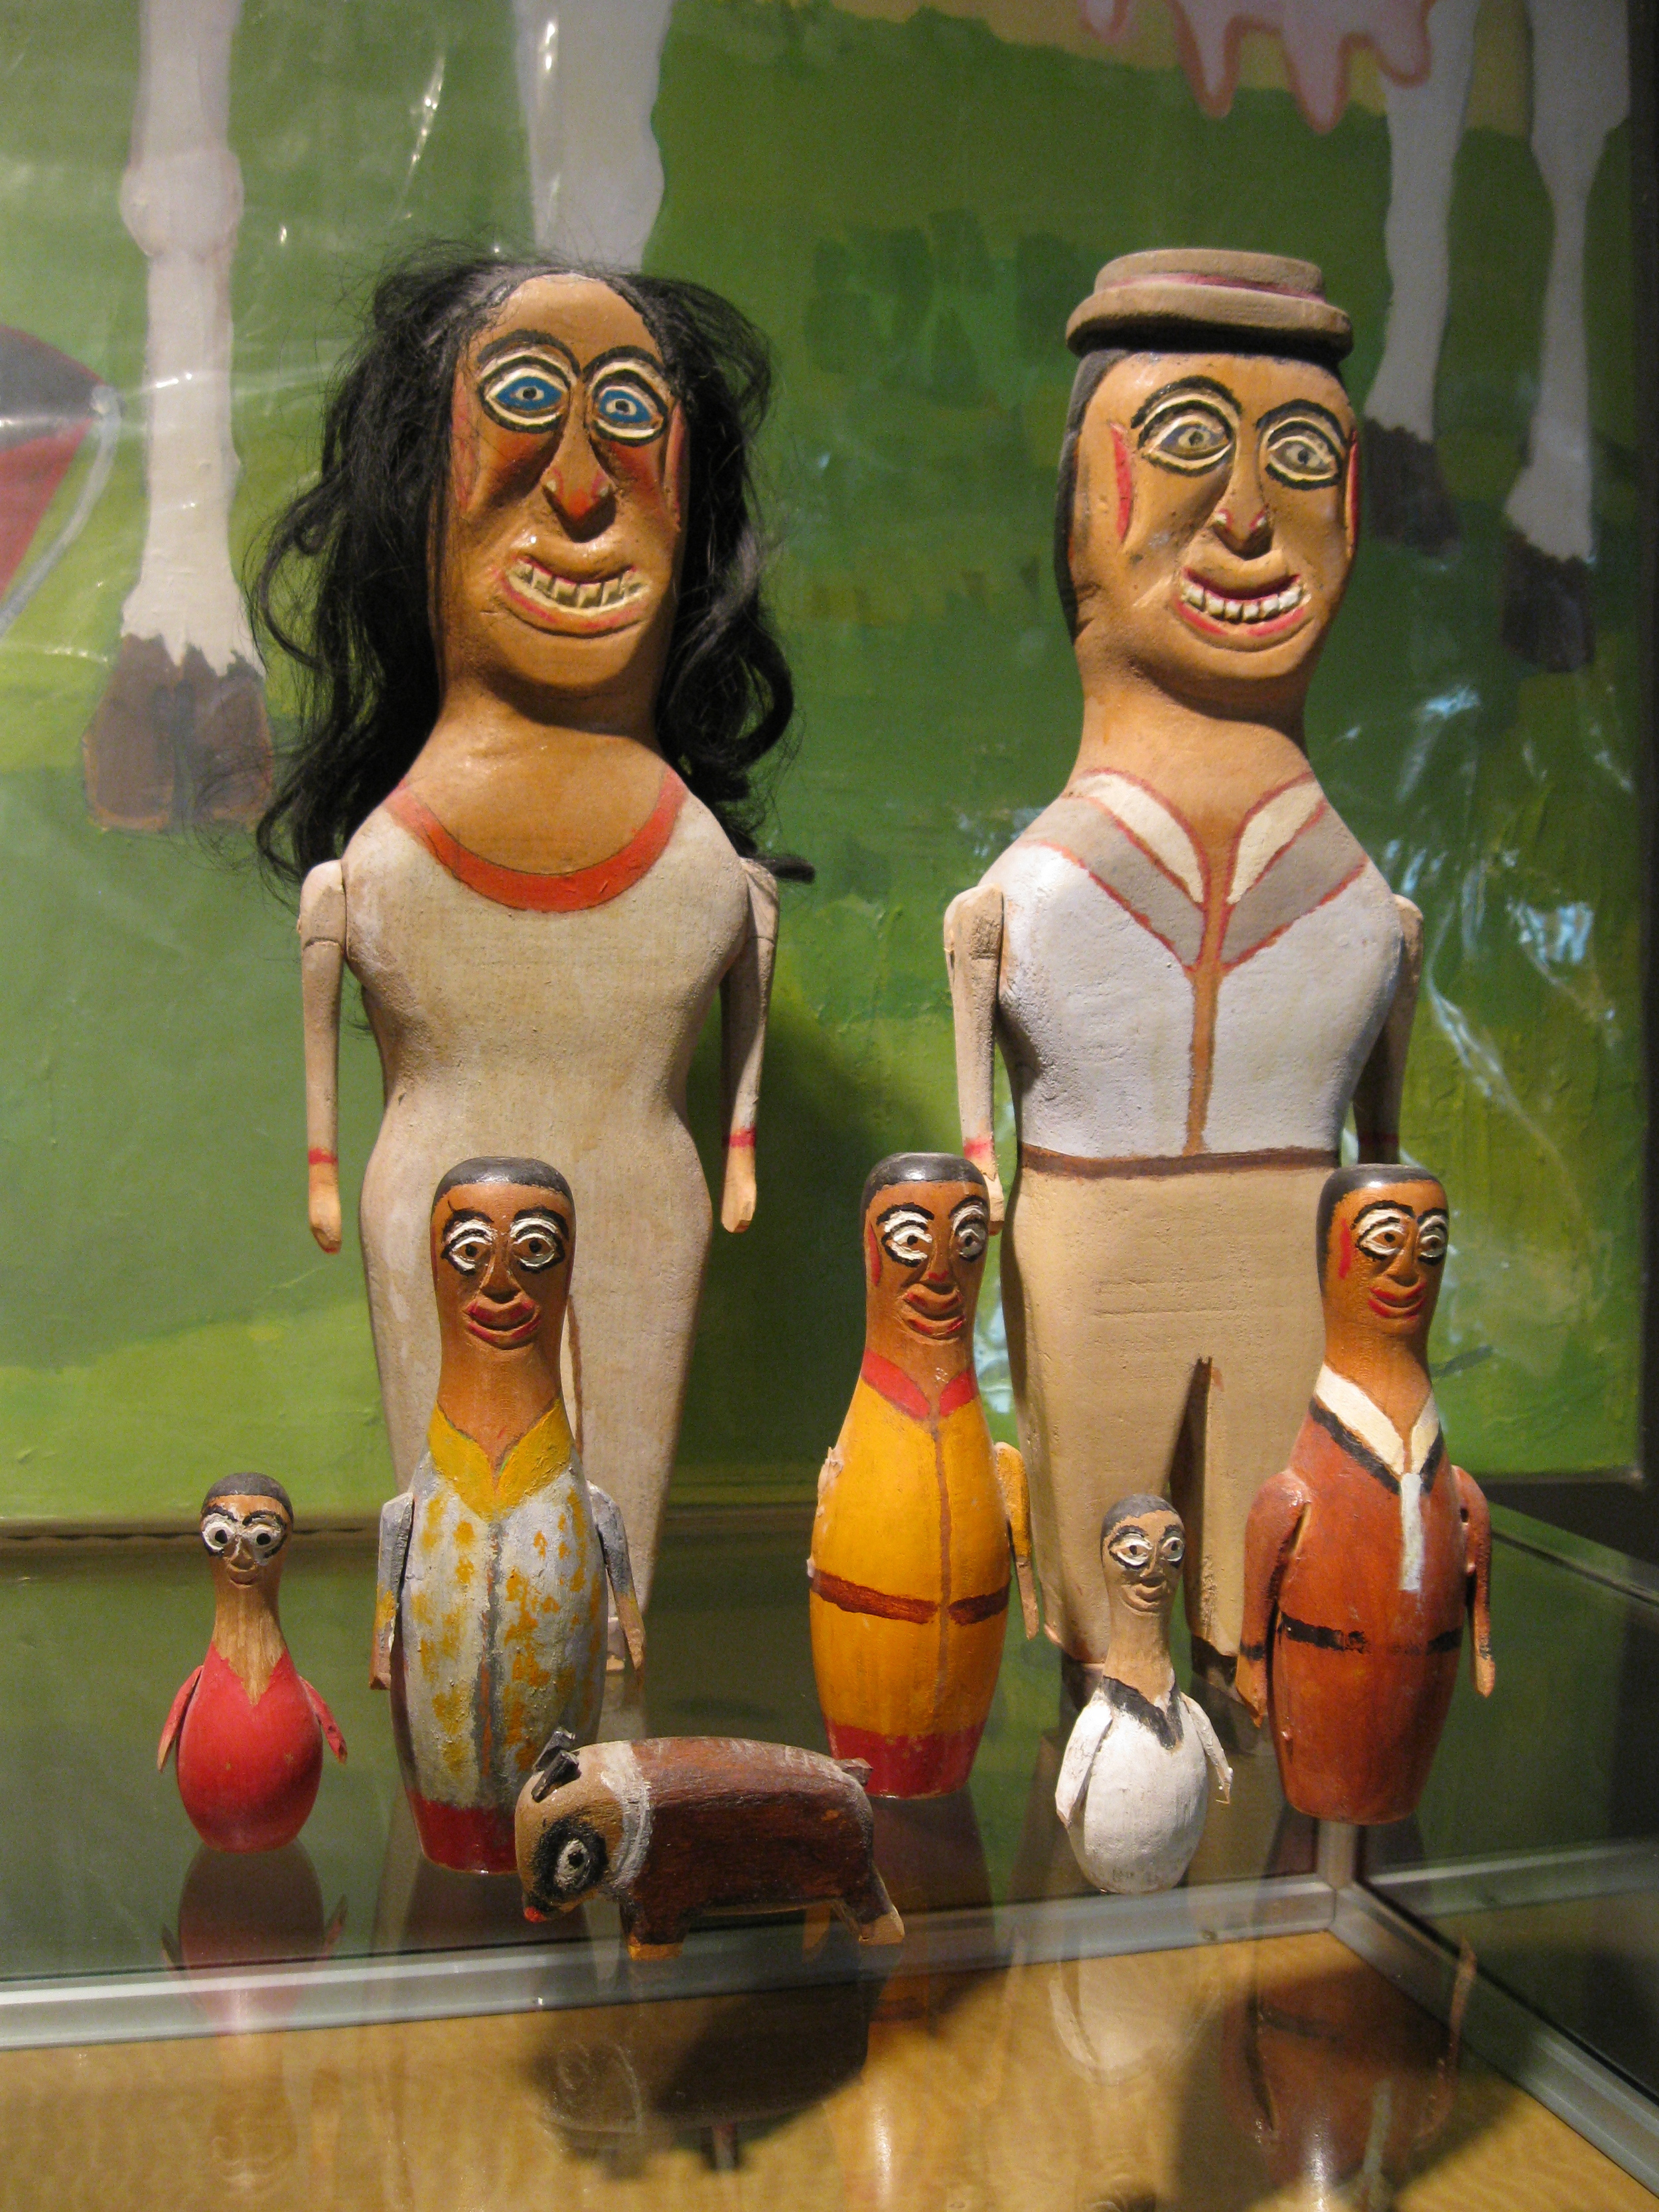 Authentic folk art figures by William Dobson, from the collection Lee Wolfson